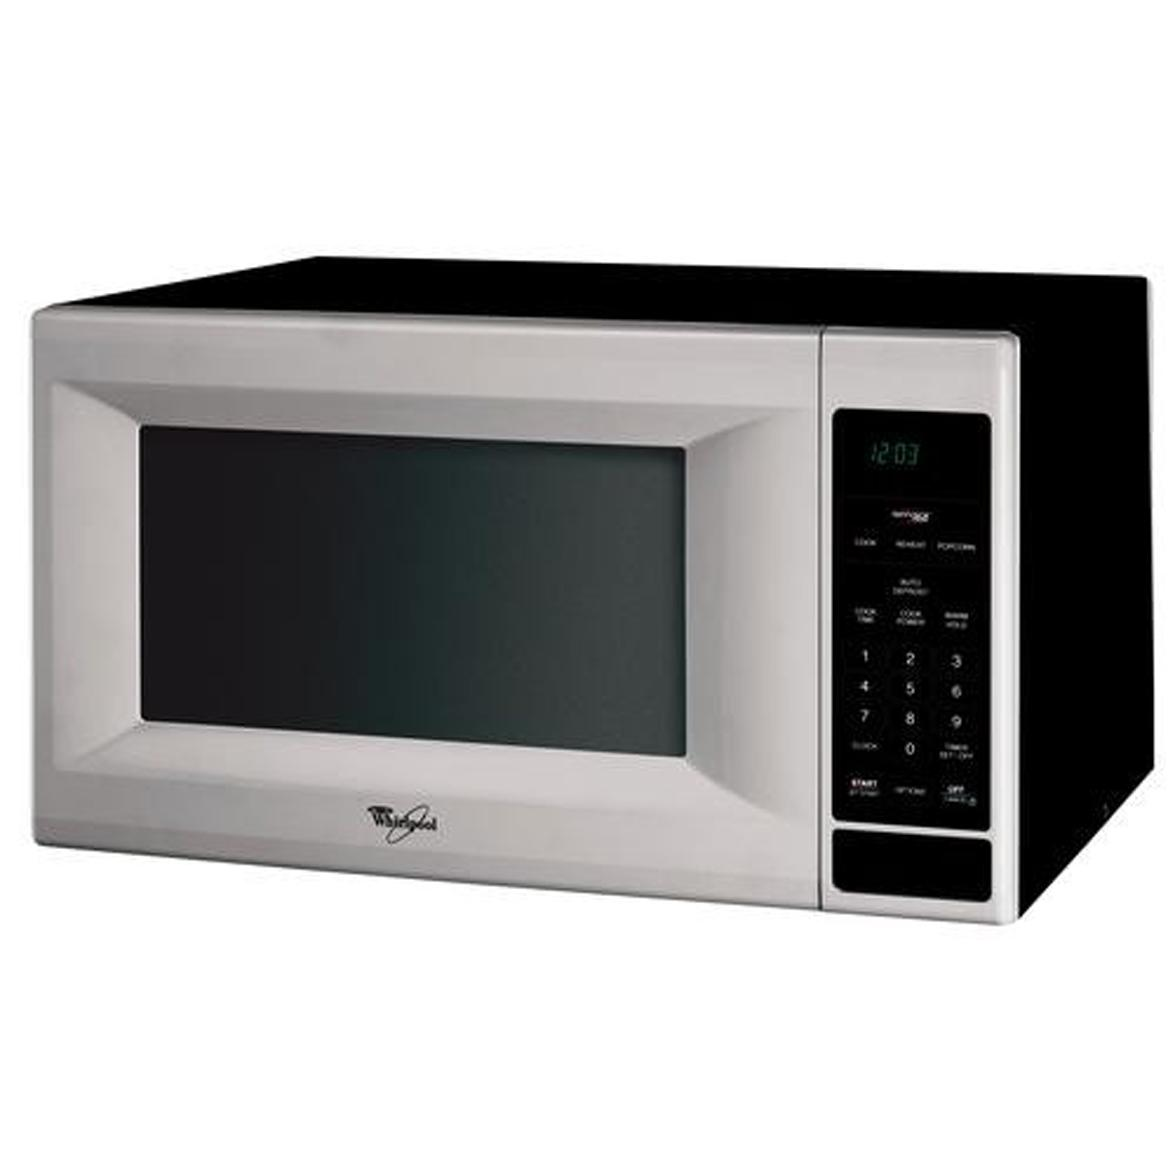 Countertop Microwaves Bisque